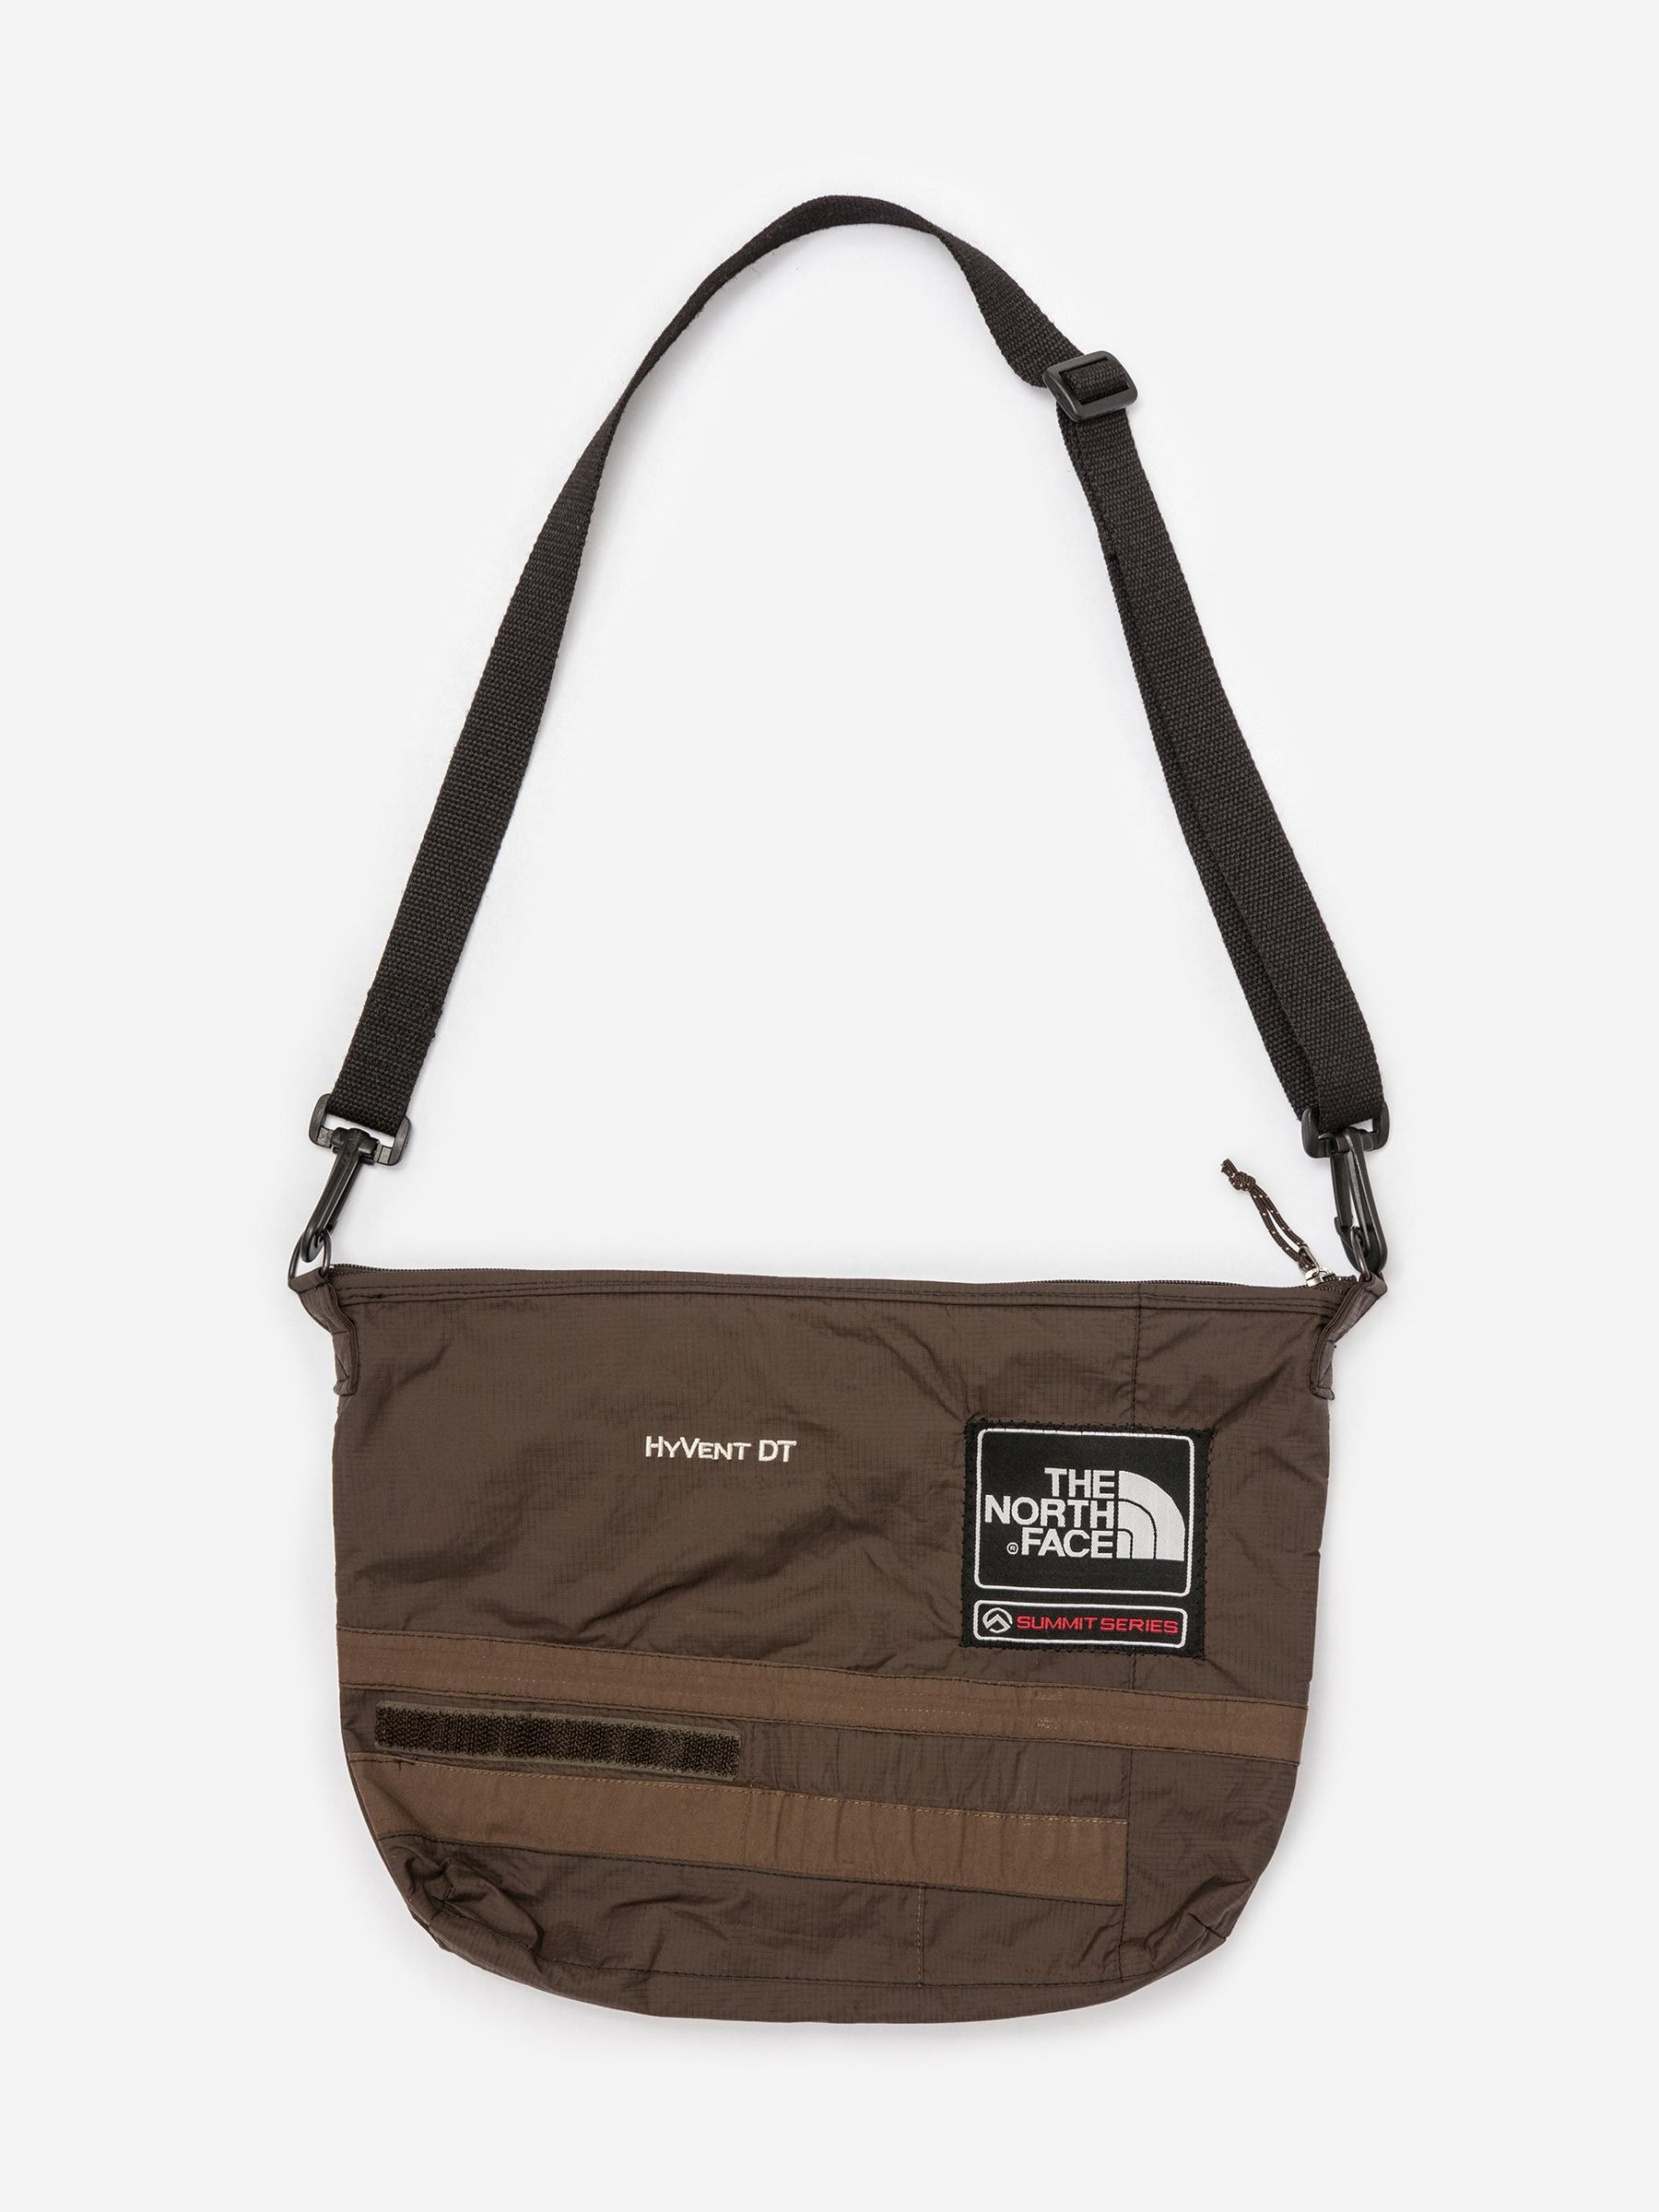 GREATER GOODS - Side Bag Multicolor - Image 1